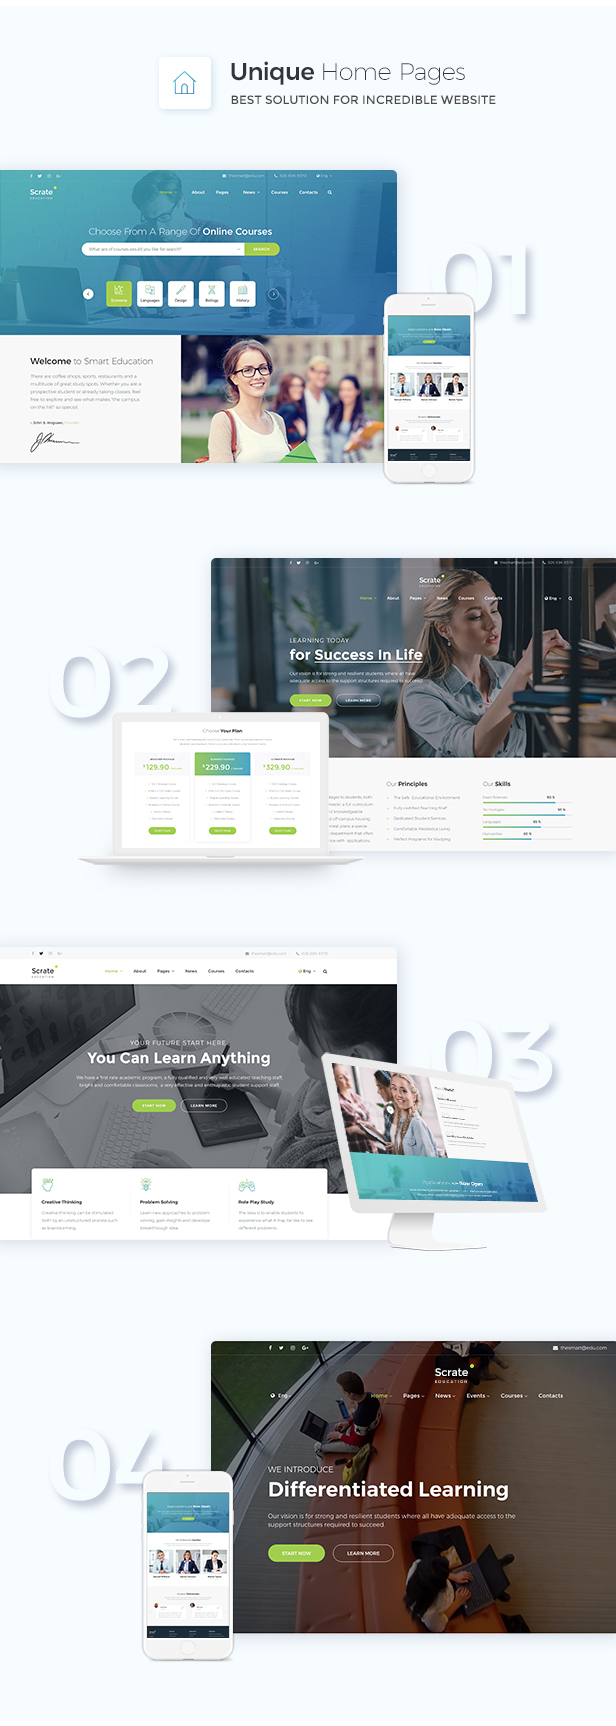 Scrate - WordPress Theme for Education and Teaching Online Courses - 3